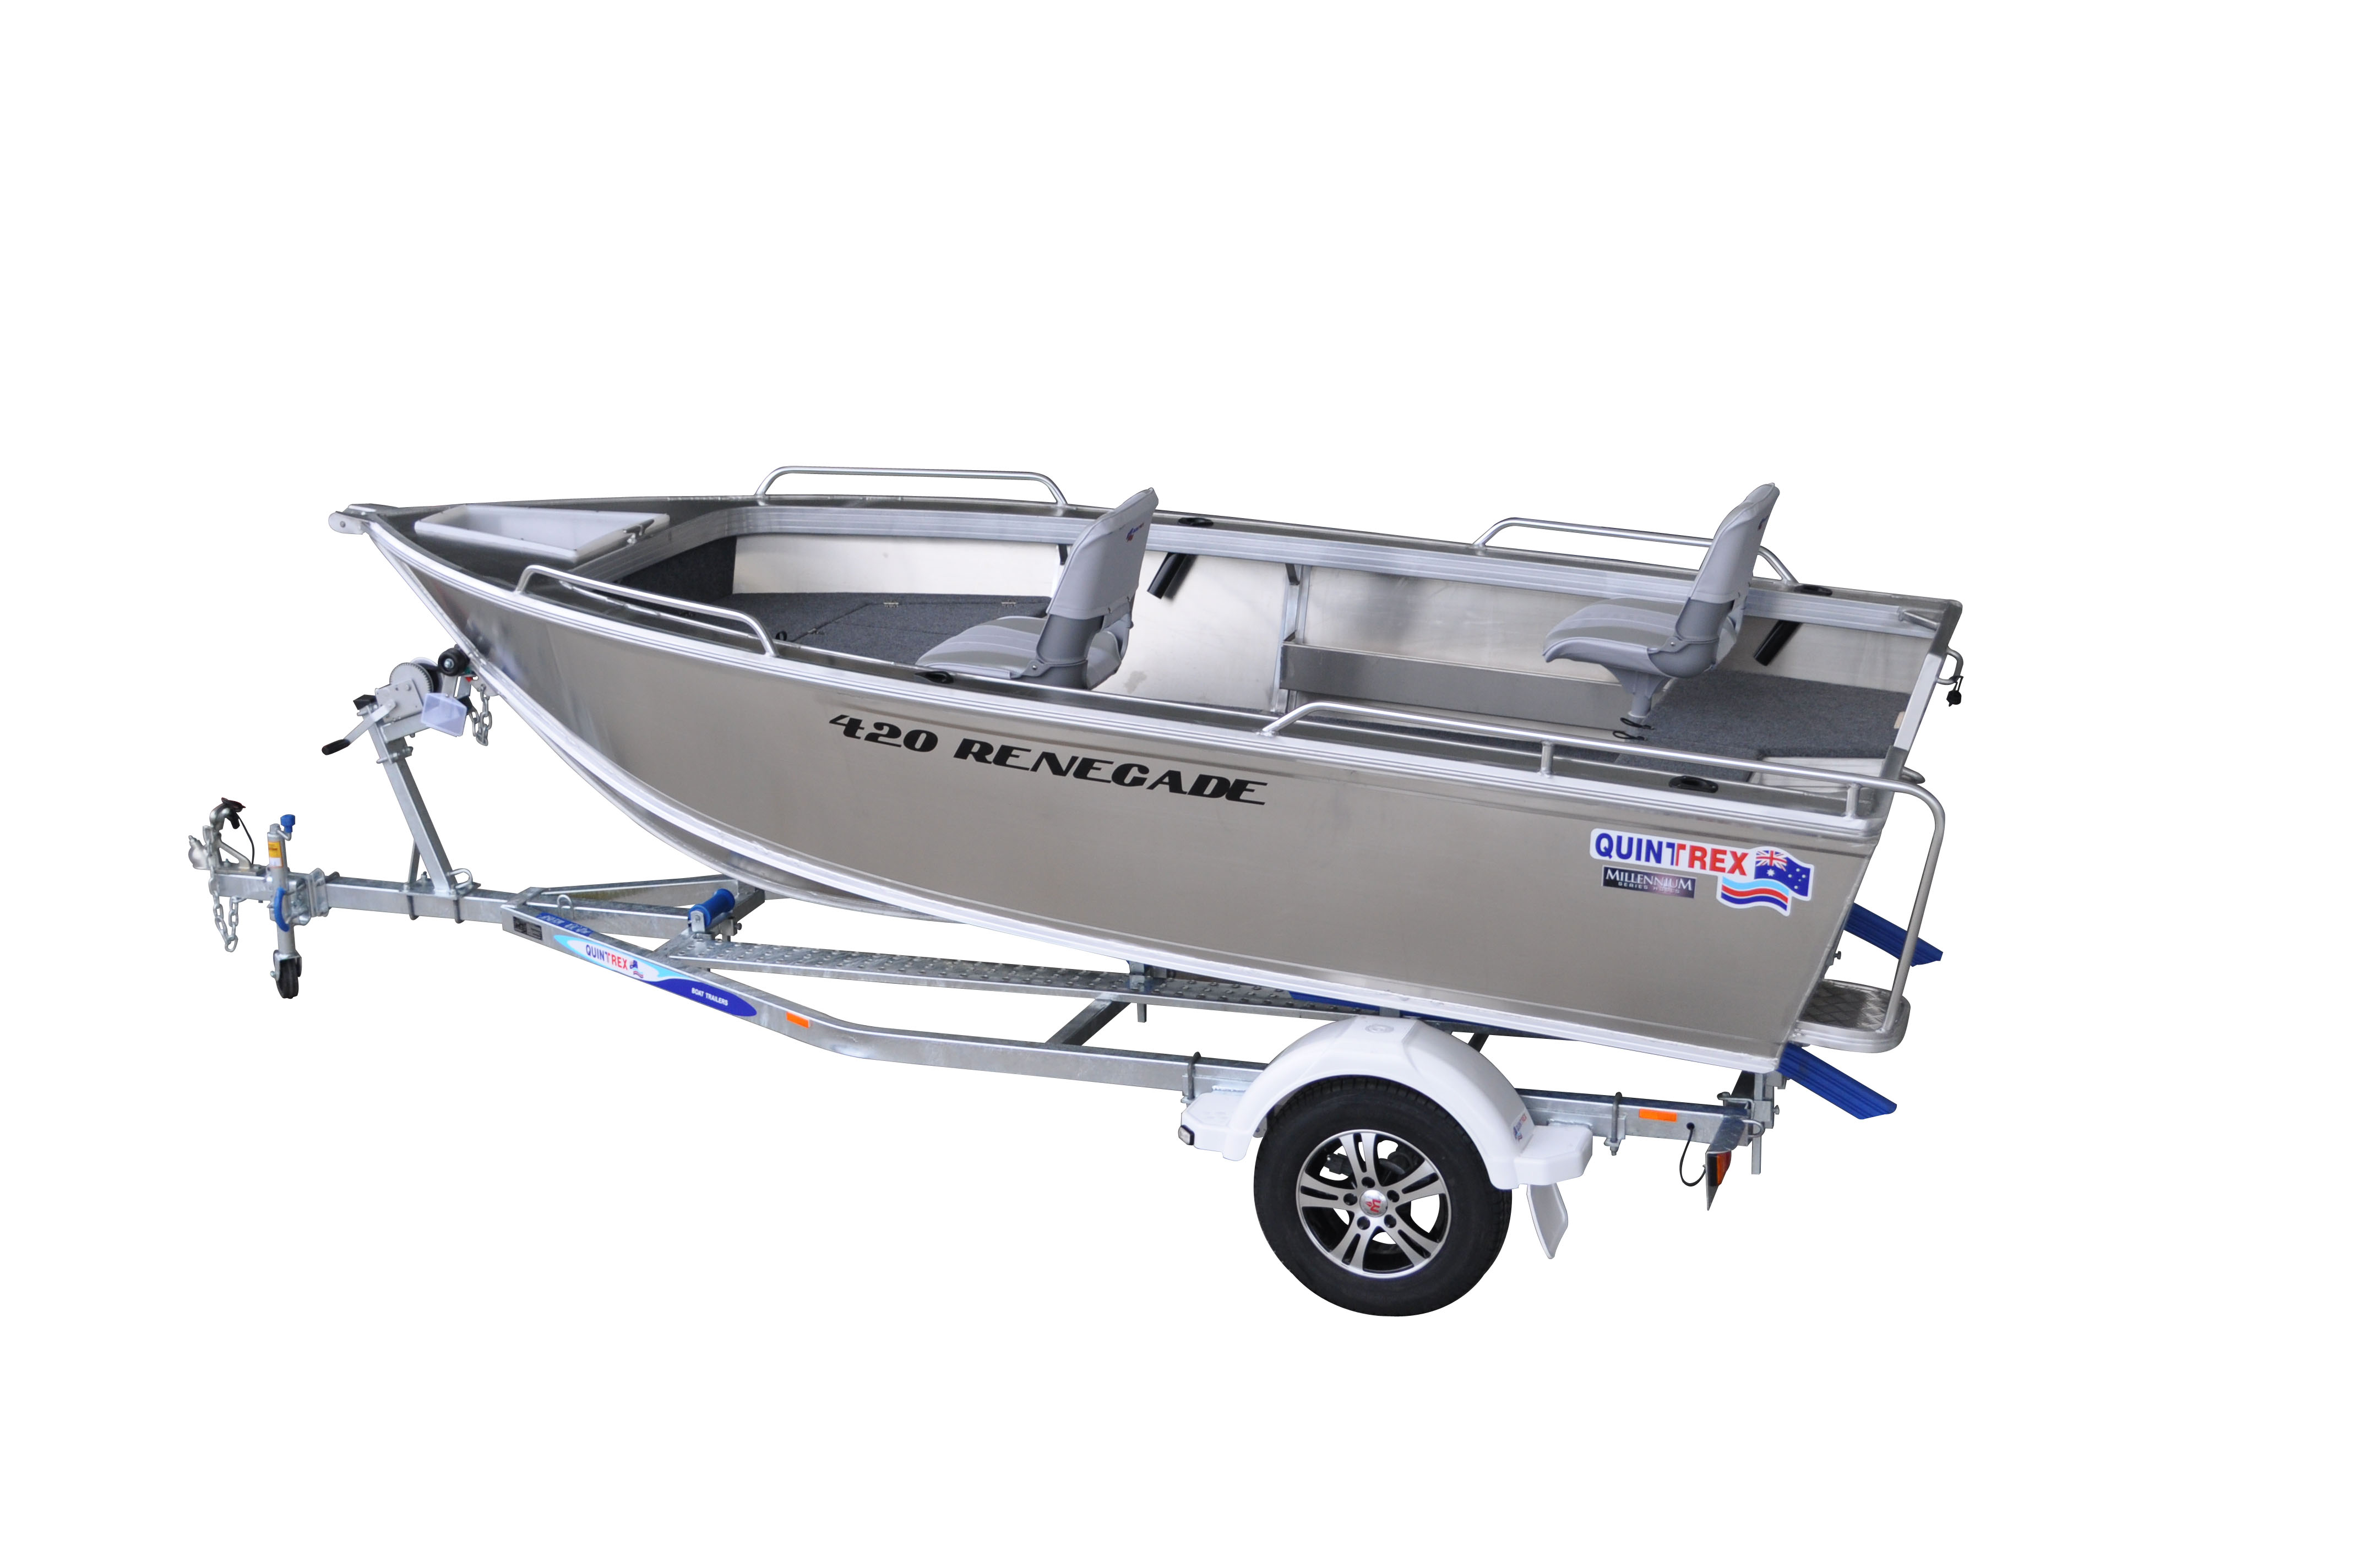 NEW 2018 QUINTREX 420 RENEGADE SC WITH EVINRUDE 40HP ETEC FOR SALE